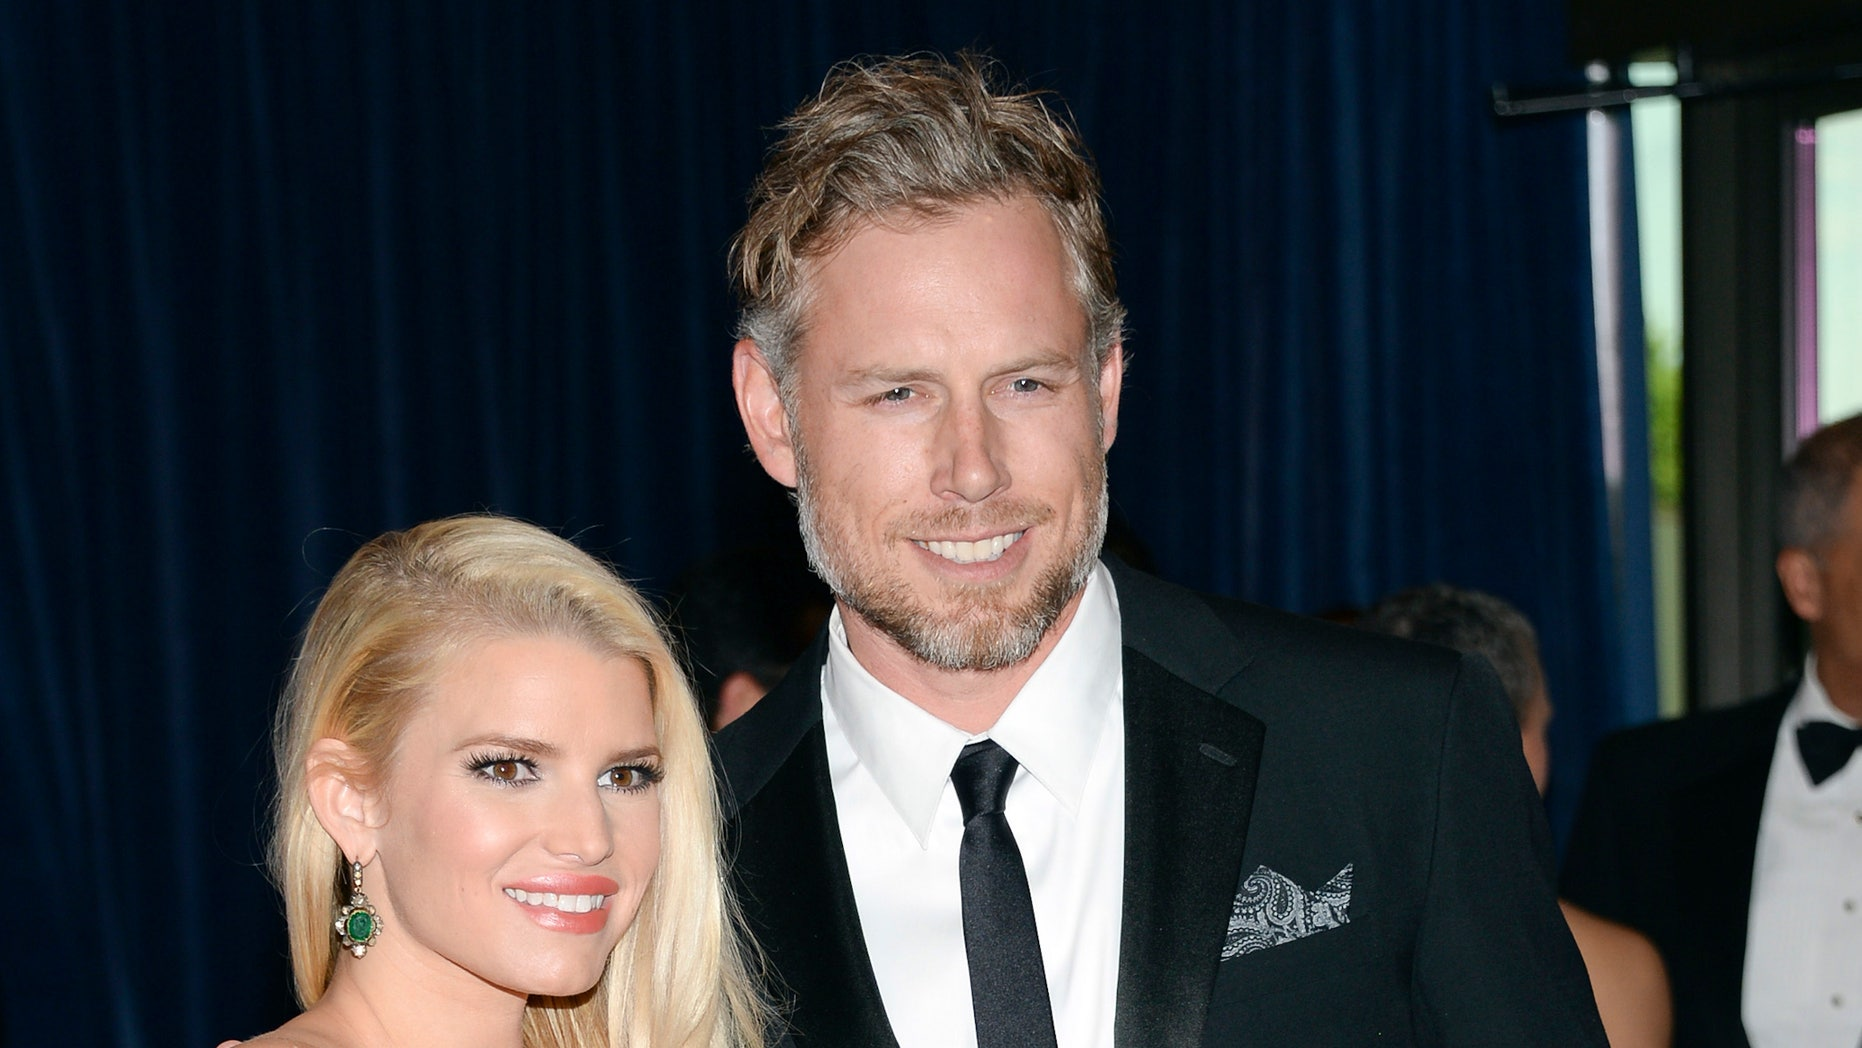 May 3, 2014. Jessica Simpson and Eric Johnson attend the White House Correspondents& Association Dinner at the Washington Hilton Hotel in Washington.